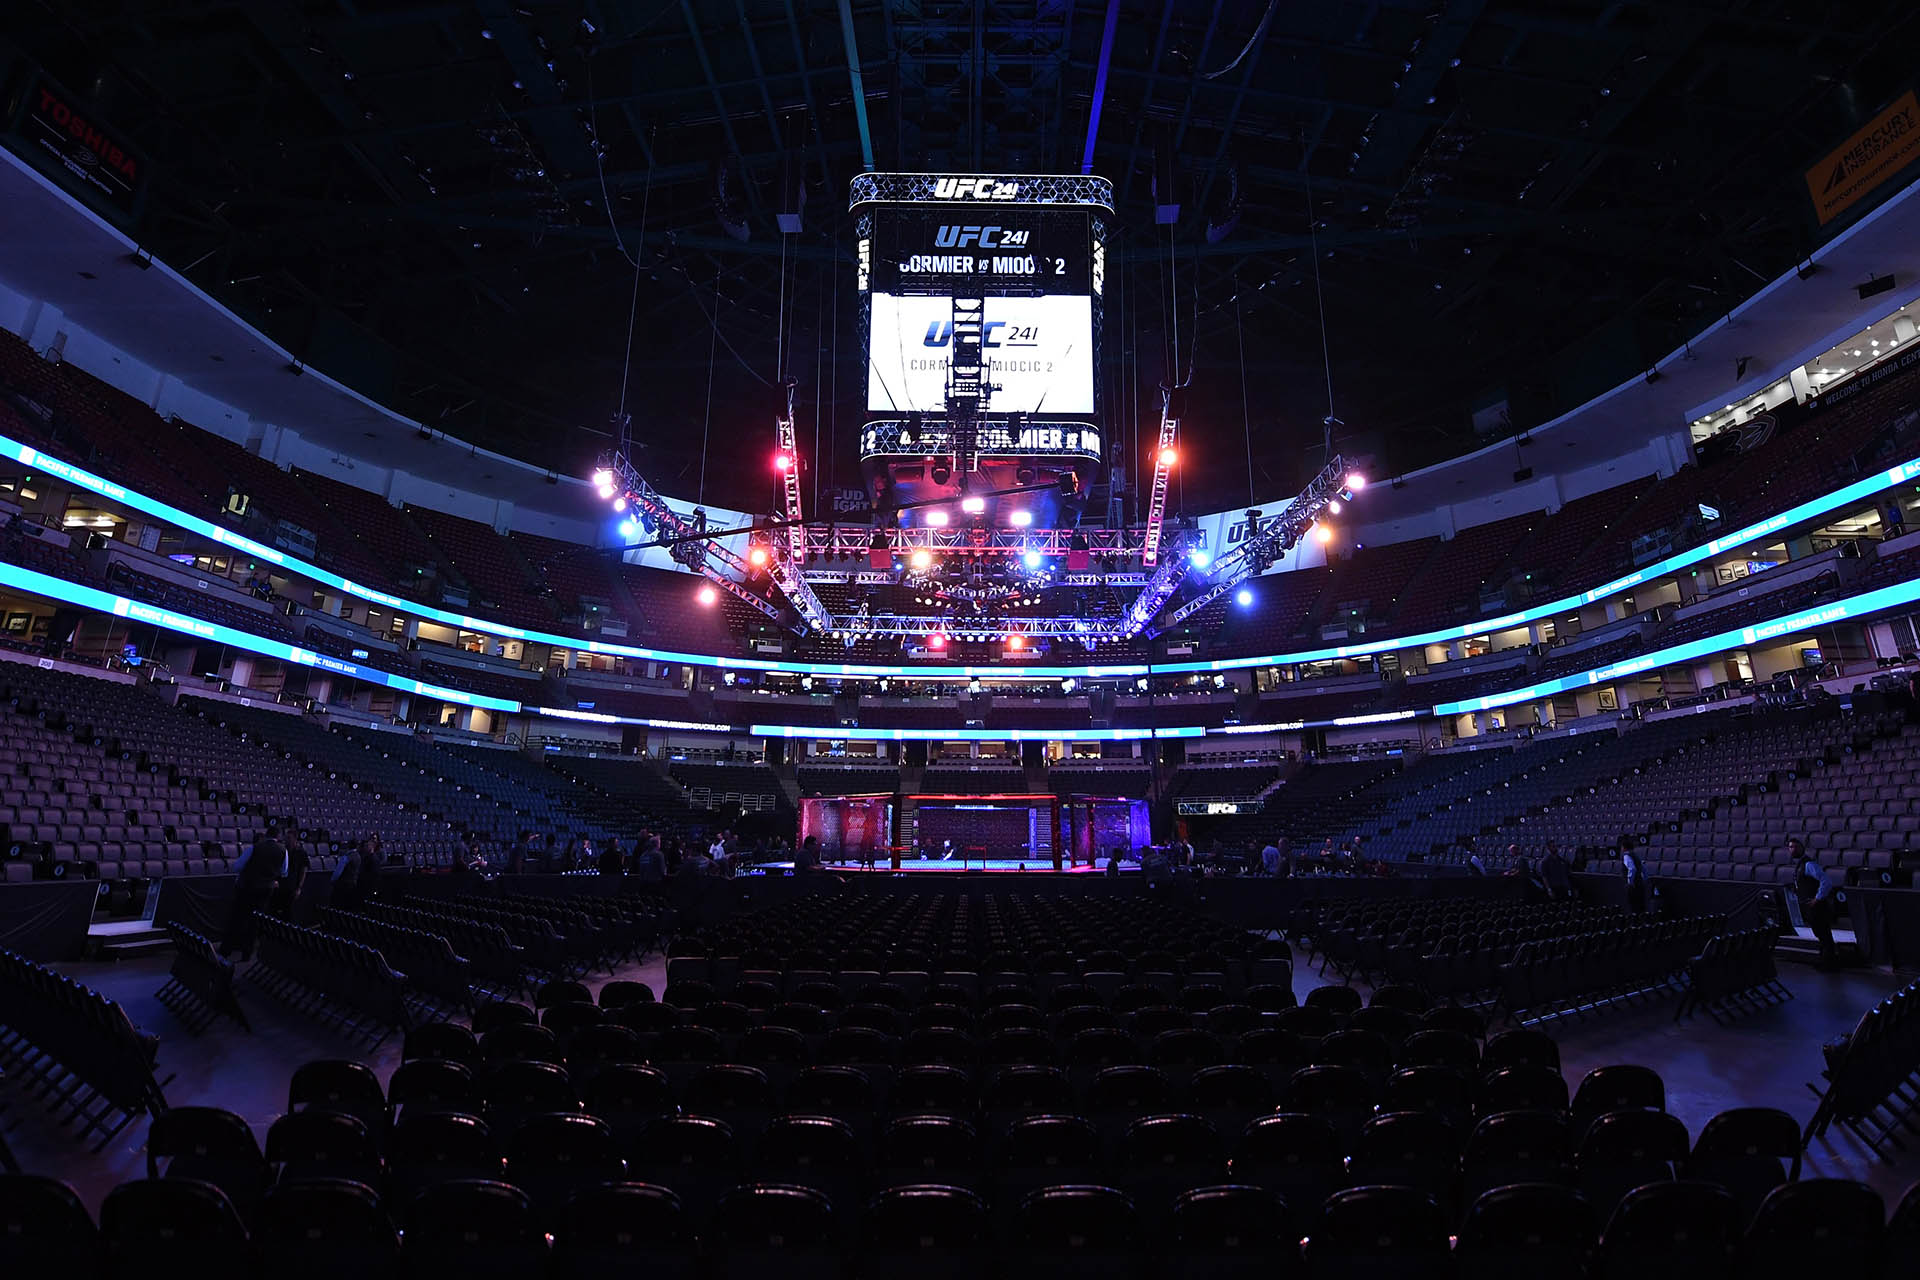 A general view of the Octagon prior to the UFC 241 event at the Honda Center on August 17, 2019 in Anaheim, California. (Photo by Josh Hedges/Zuffa LLC/Zuffa LLC via Getty Images)